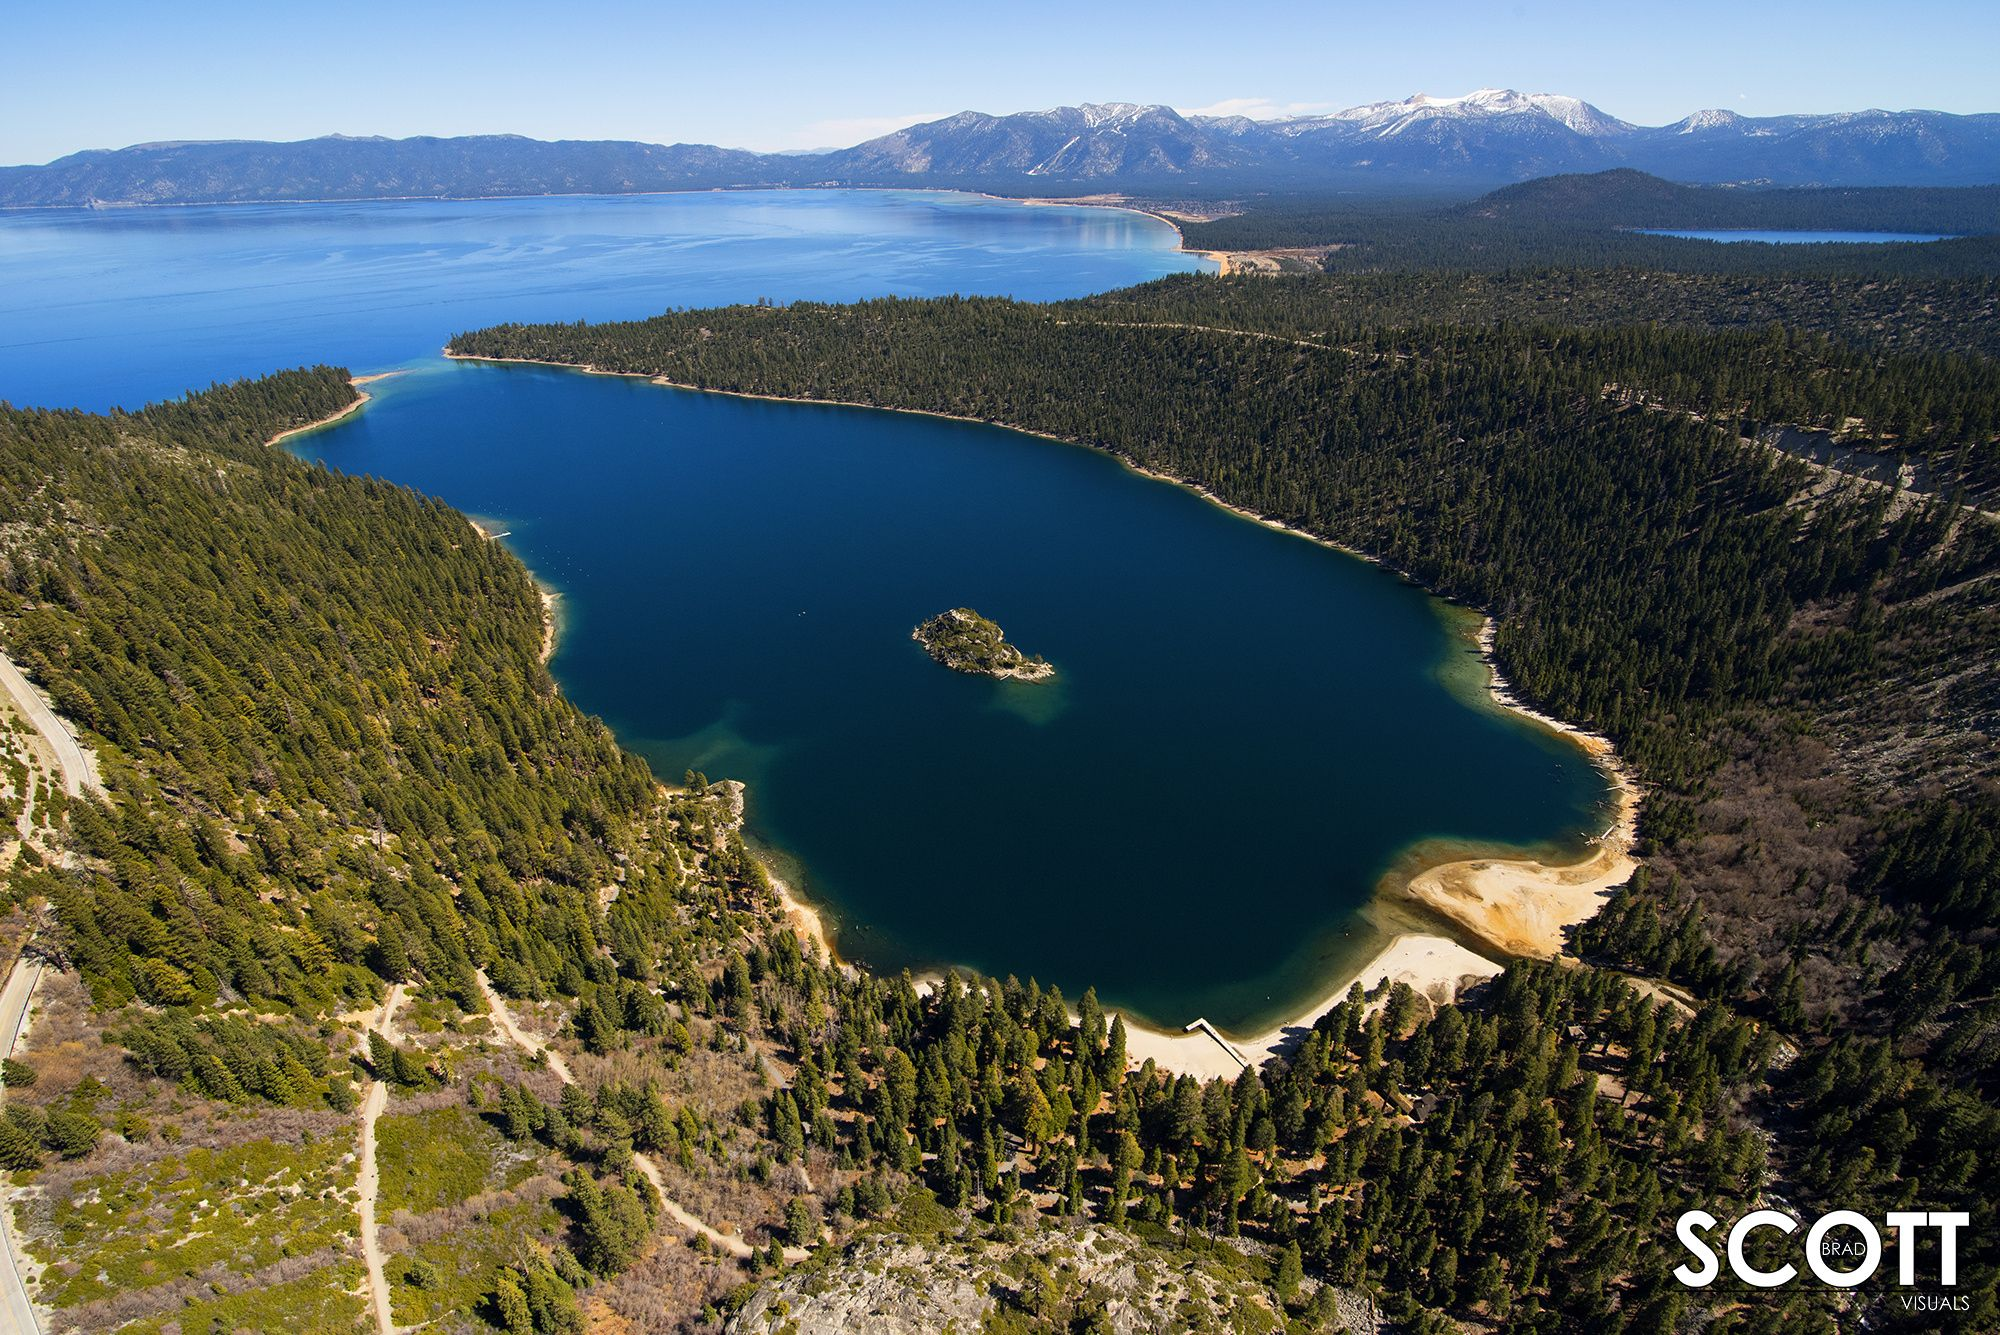 Emerald Bay In South Lake Tahoe, Ca Is One Of